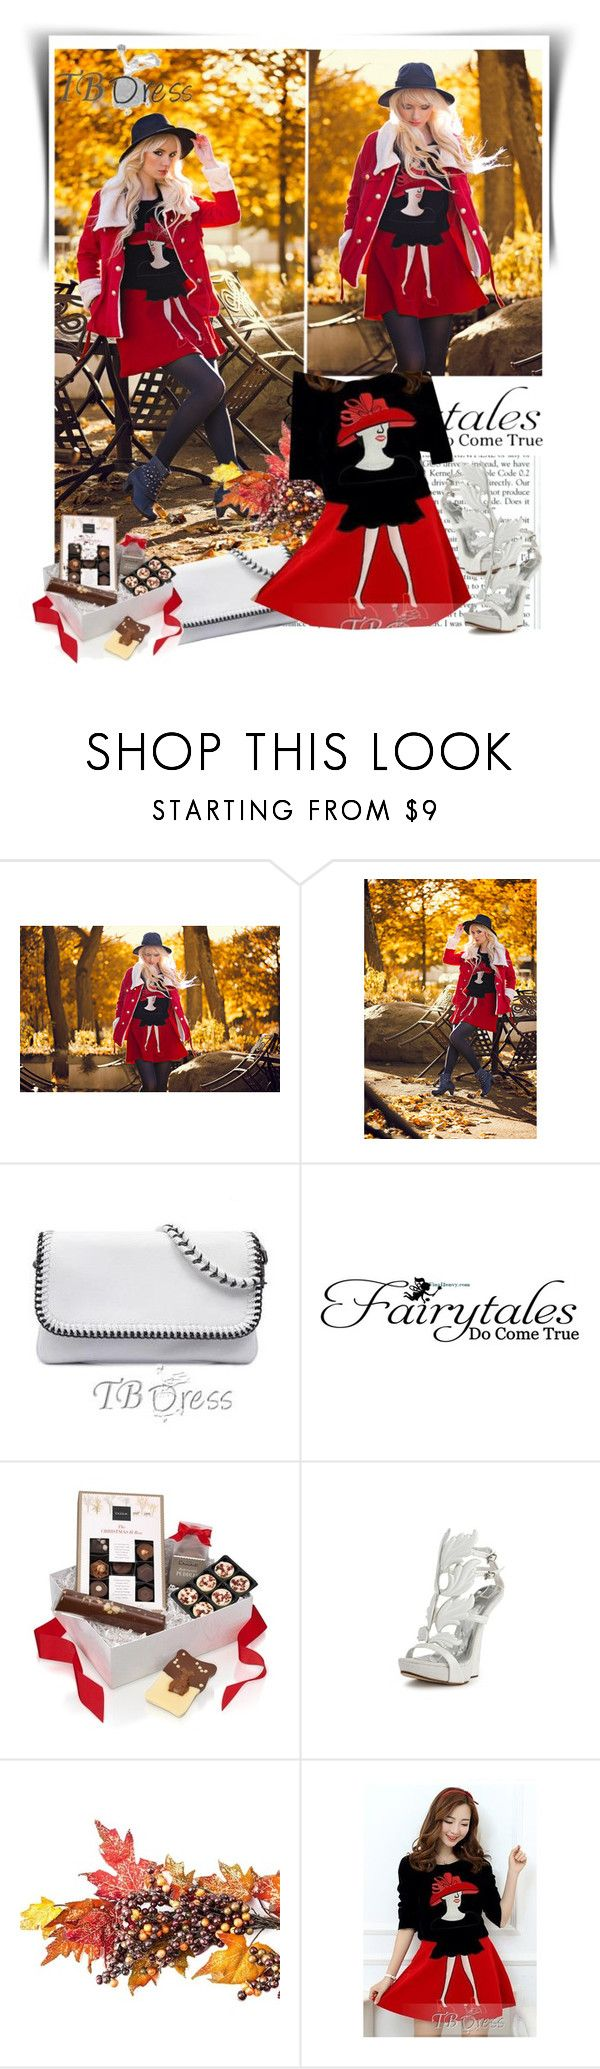 """""""TB Dress"""" by dalila-mujic ❤ liked on Polyvore featuring WALL and tbdress"""